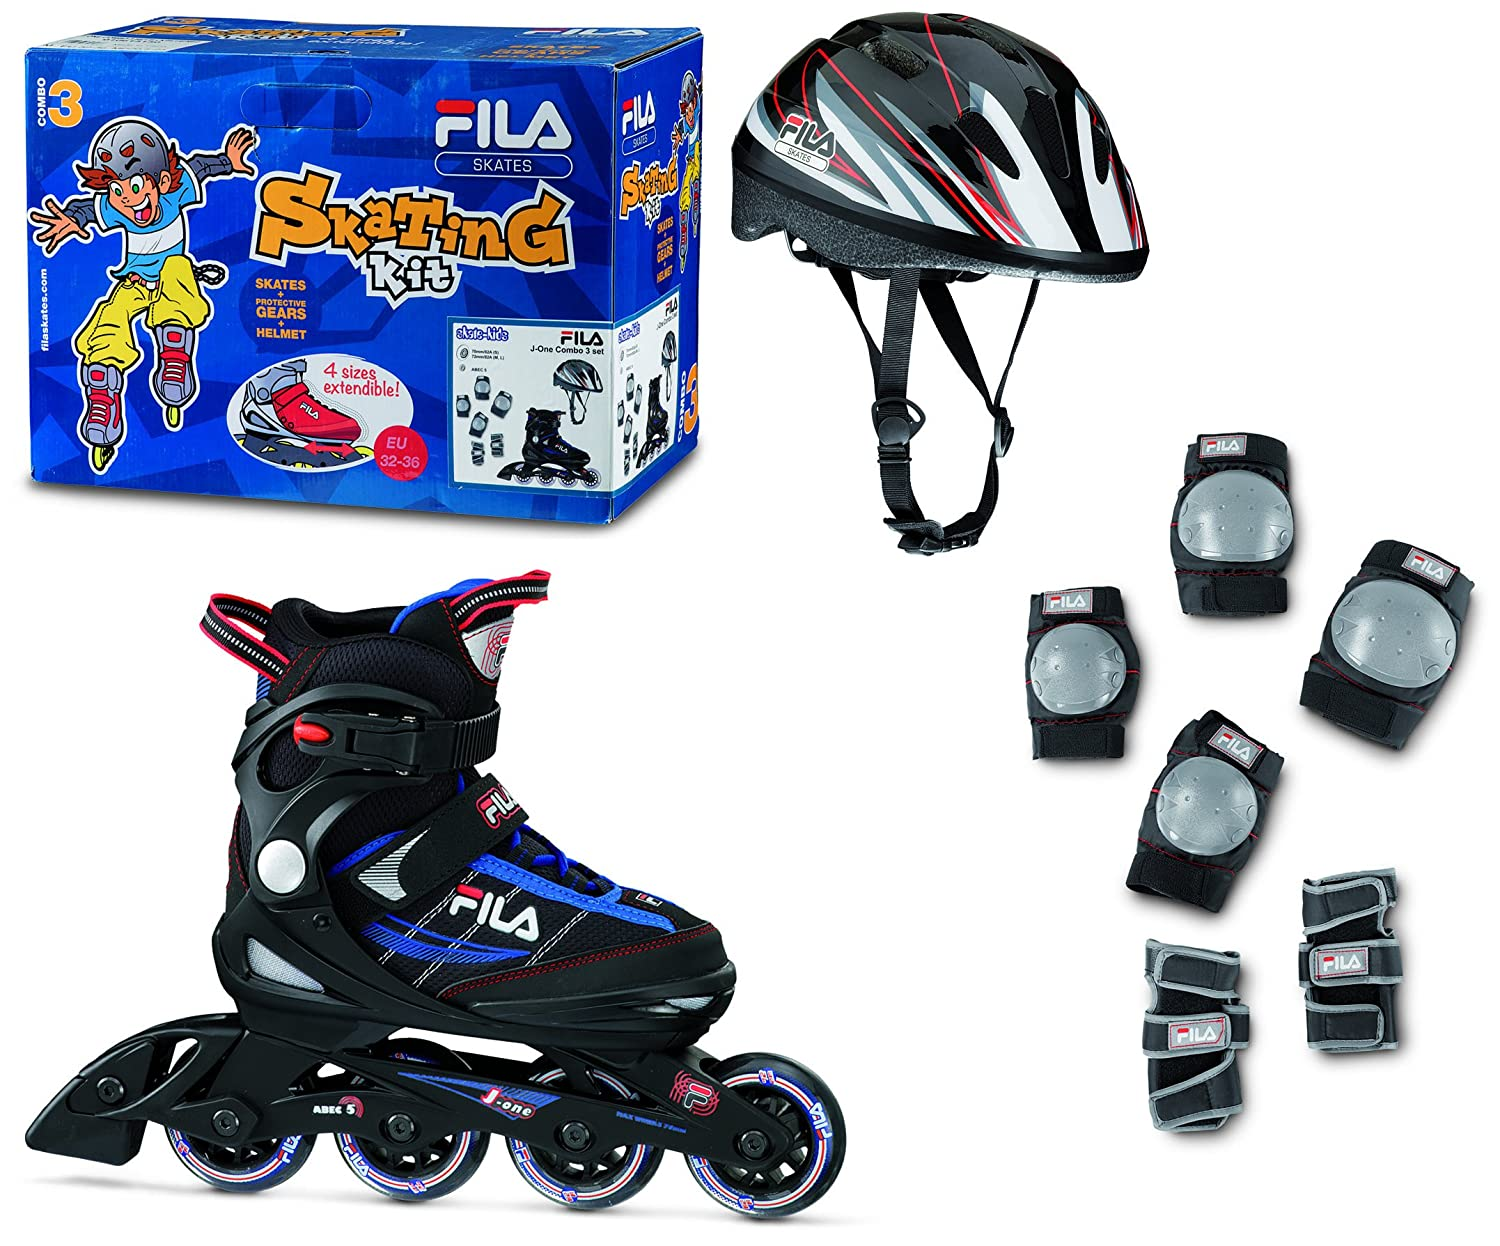 FILA SKATES Patines en Línea J-One Combo 3 Set Black Blue Red Negro/Azul / Rojo EU 36/40 010616150 010616150_BLK/BLUE/RED-L